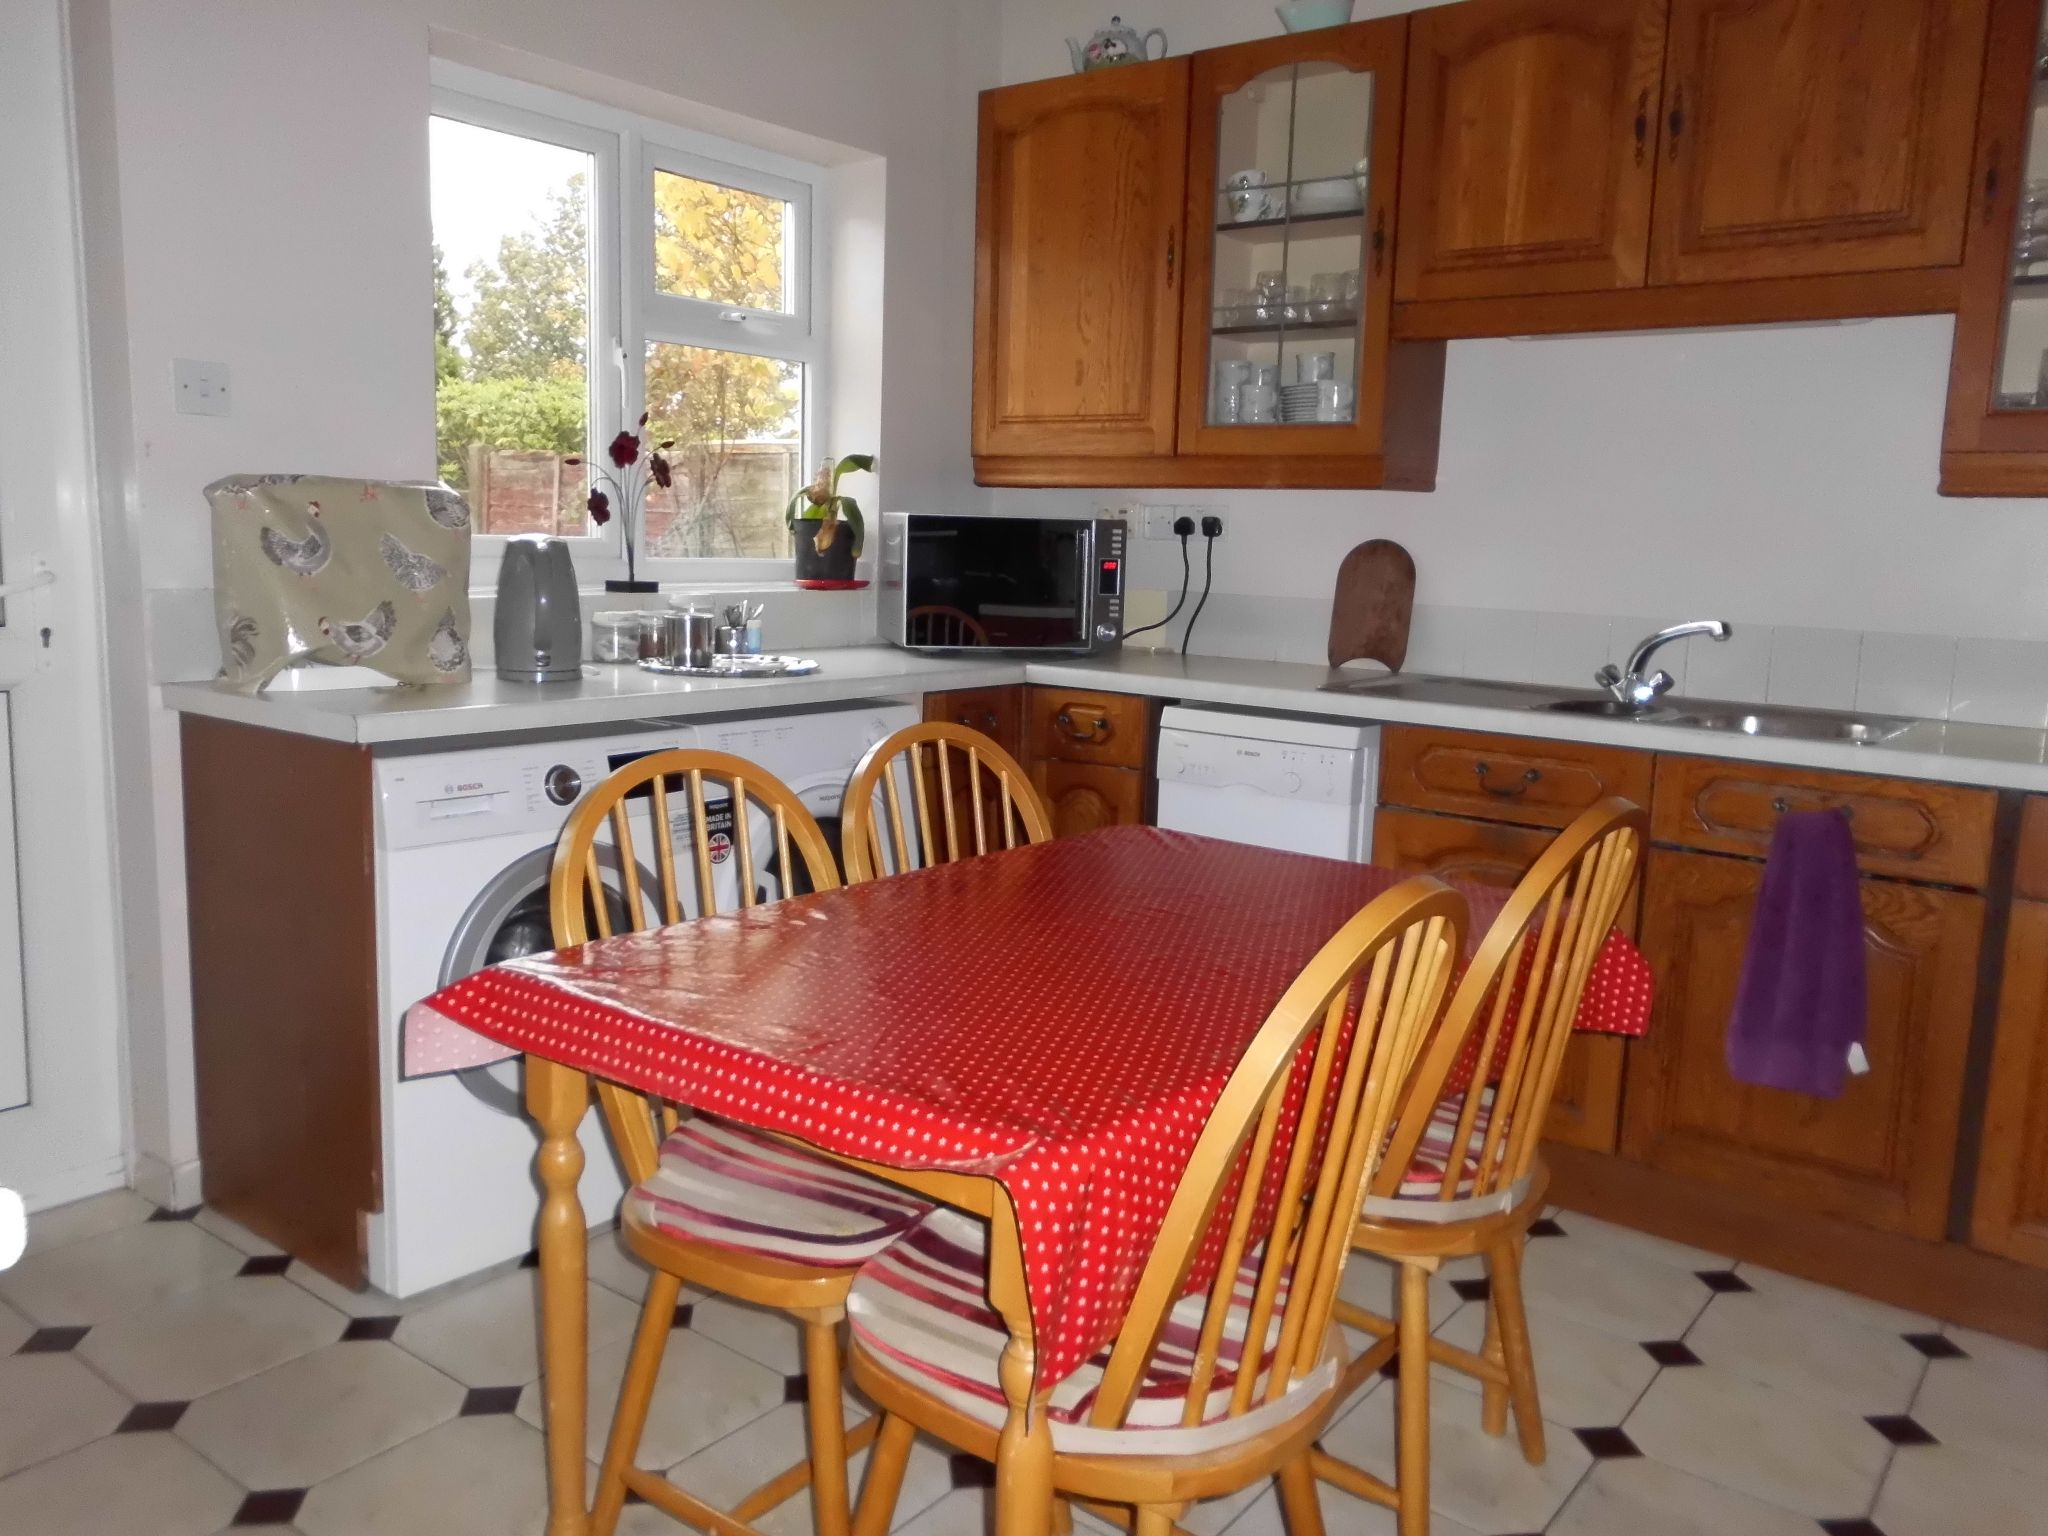 4 bedroom detached bungalow SSTC in Leicester - Photograph 5.